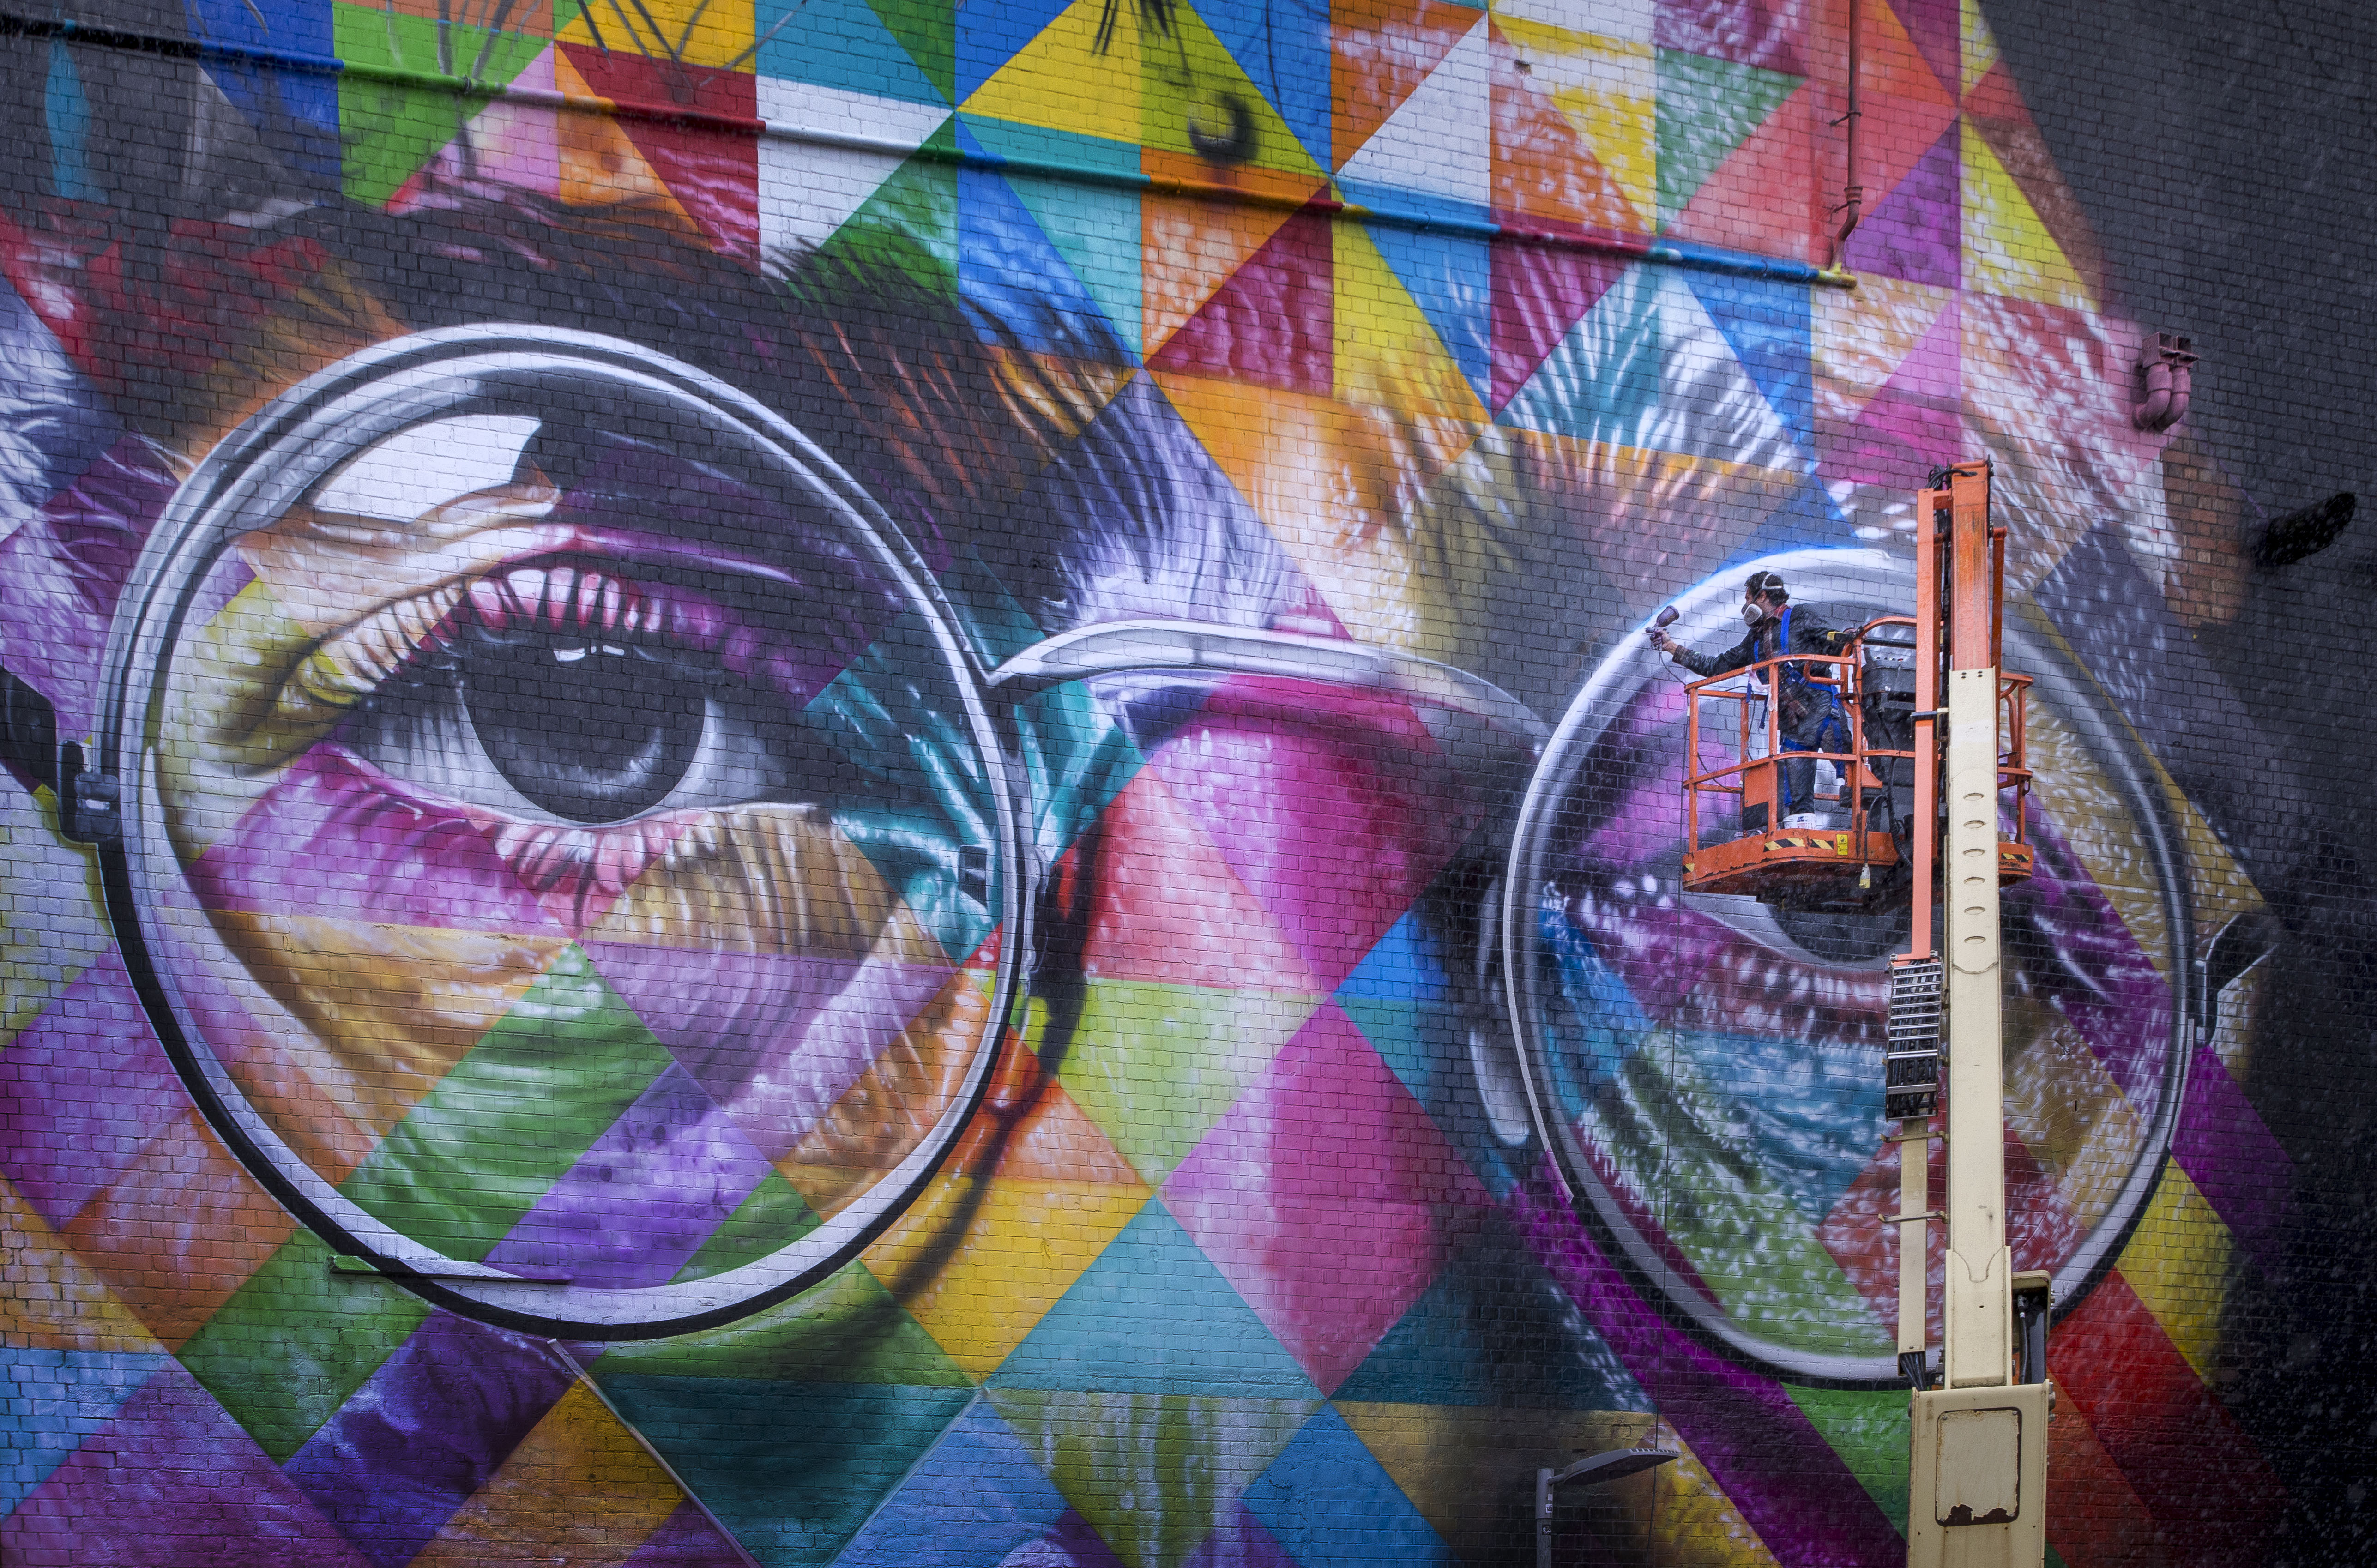 Graffiti image of man in glasses on a large wall